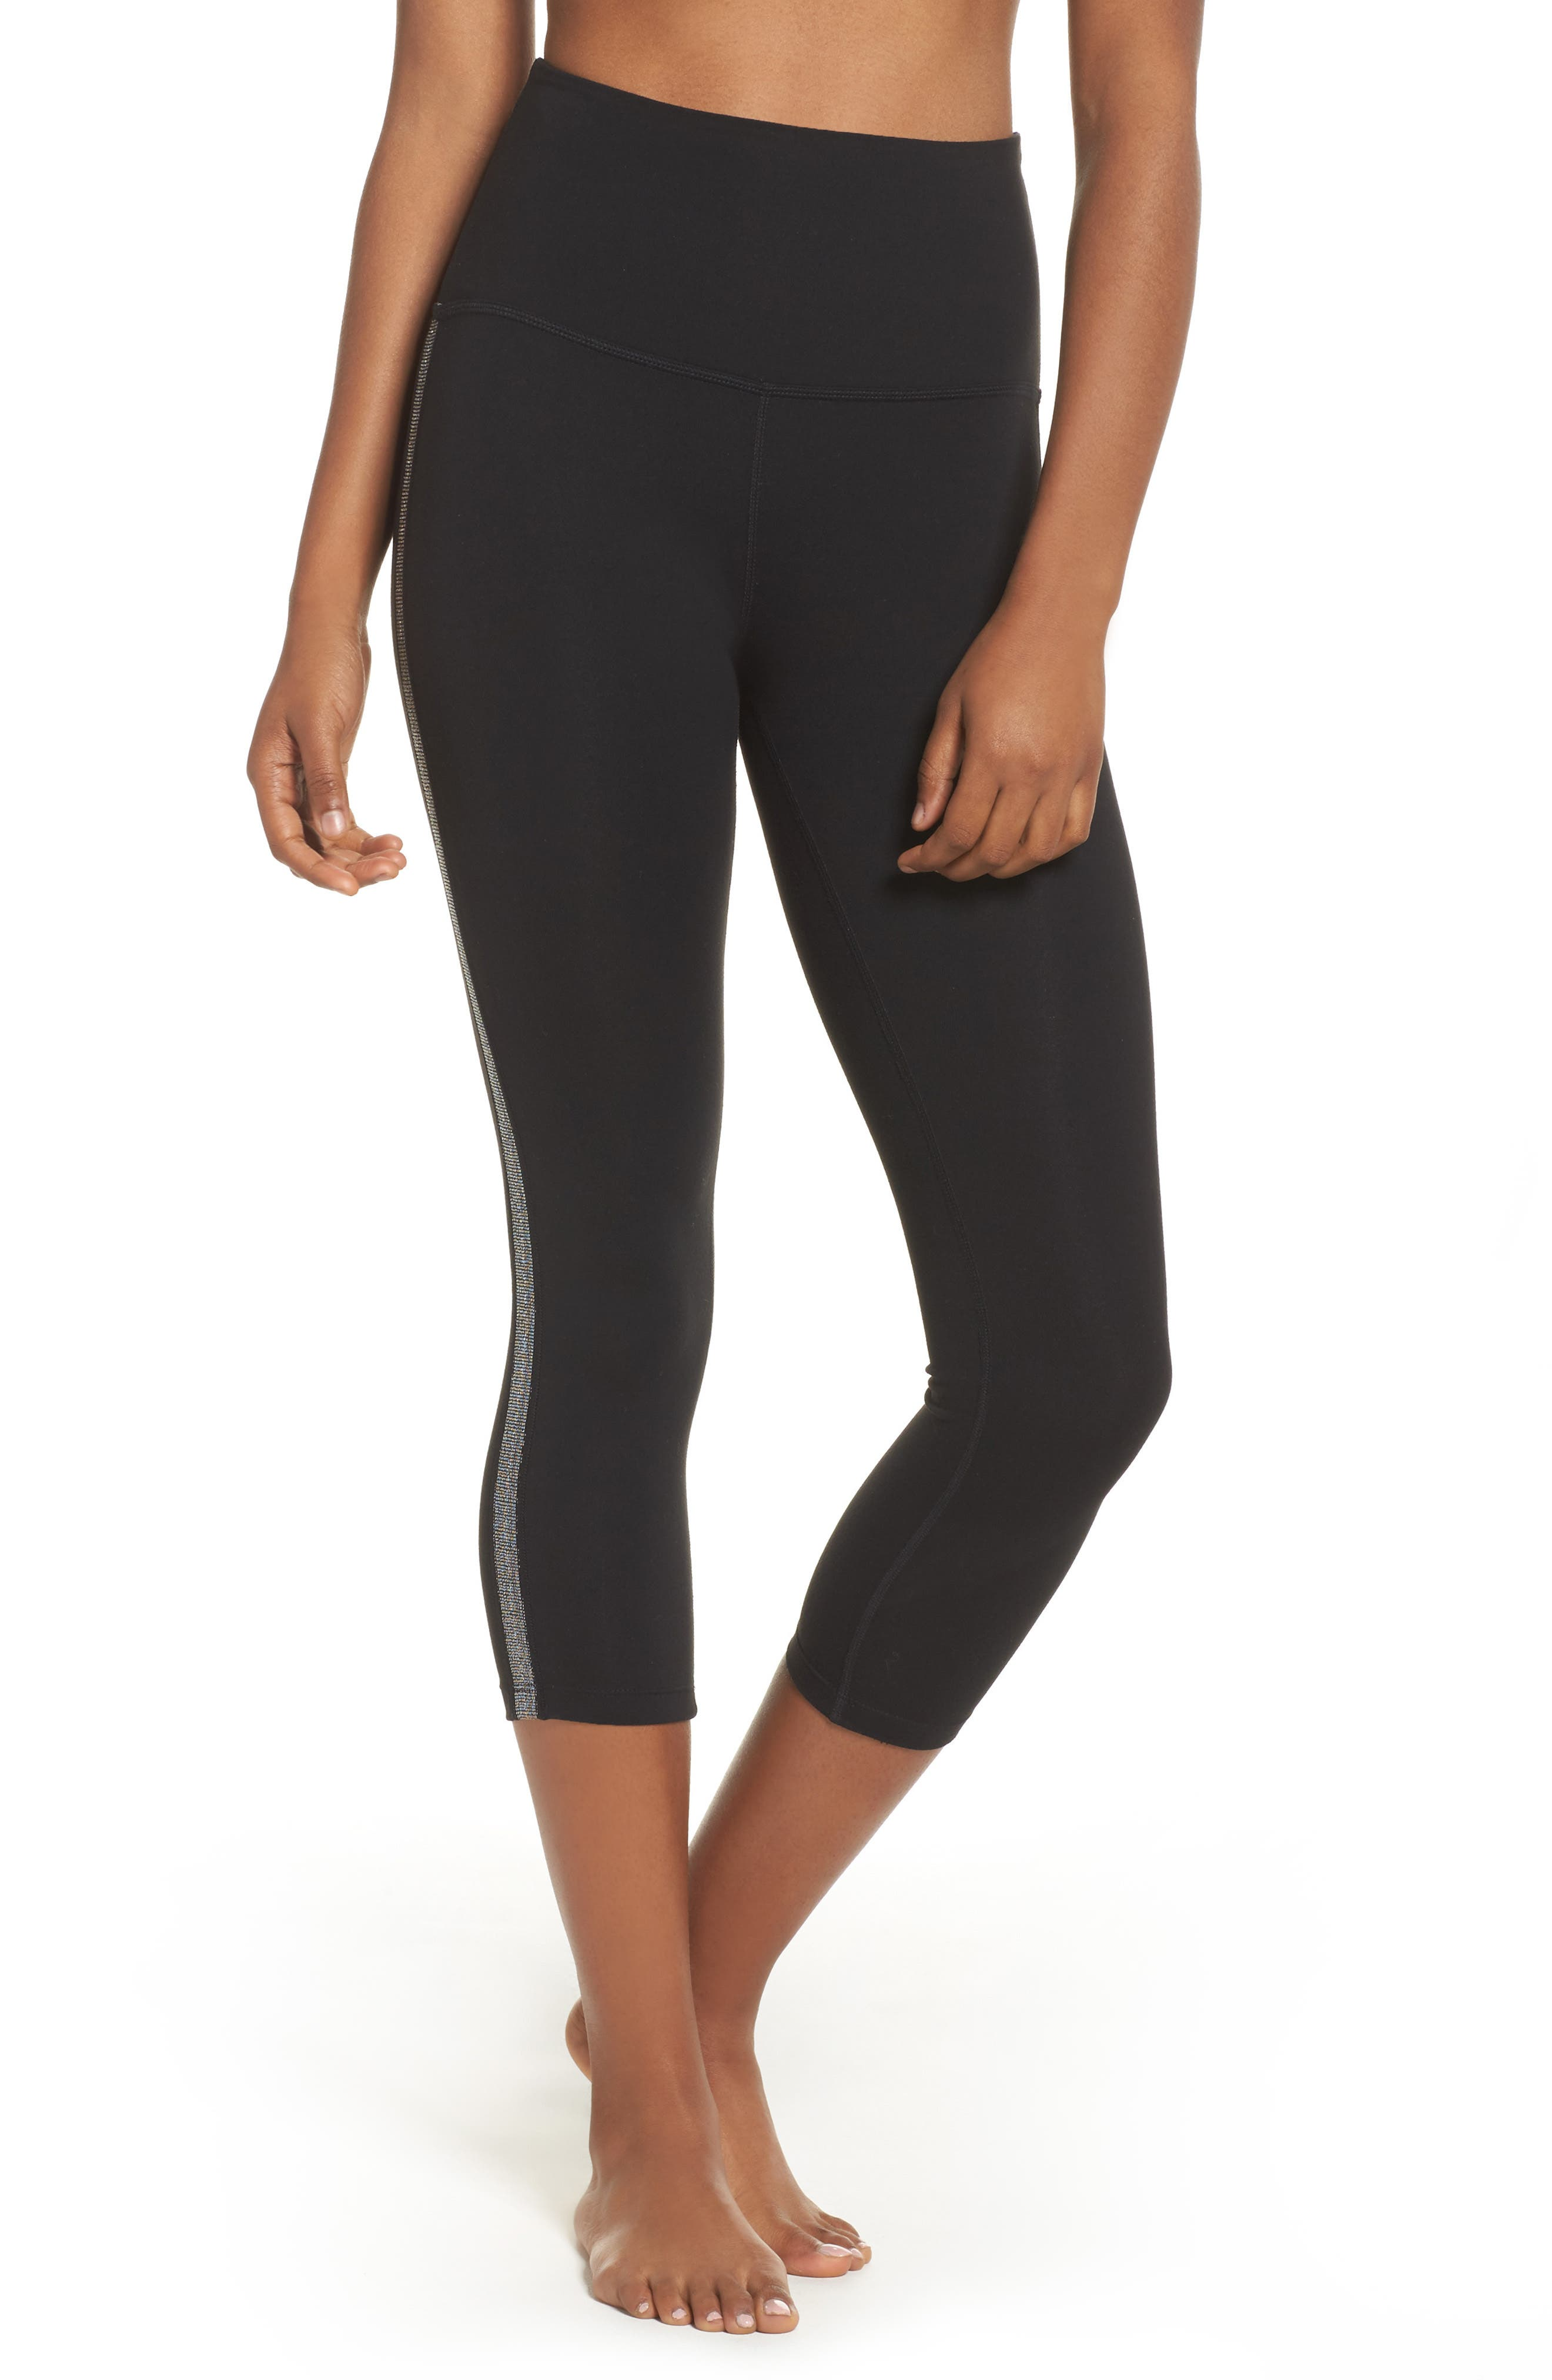 Main Image - Beyond Yoga Fit & Trim High Waist Capri Leggings